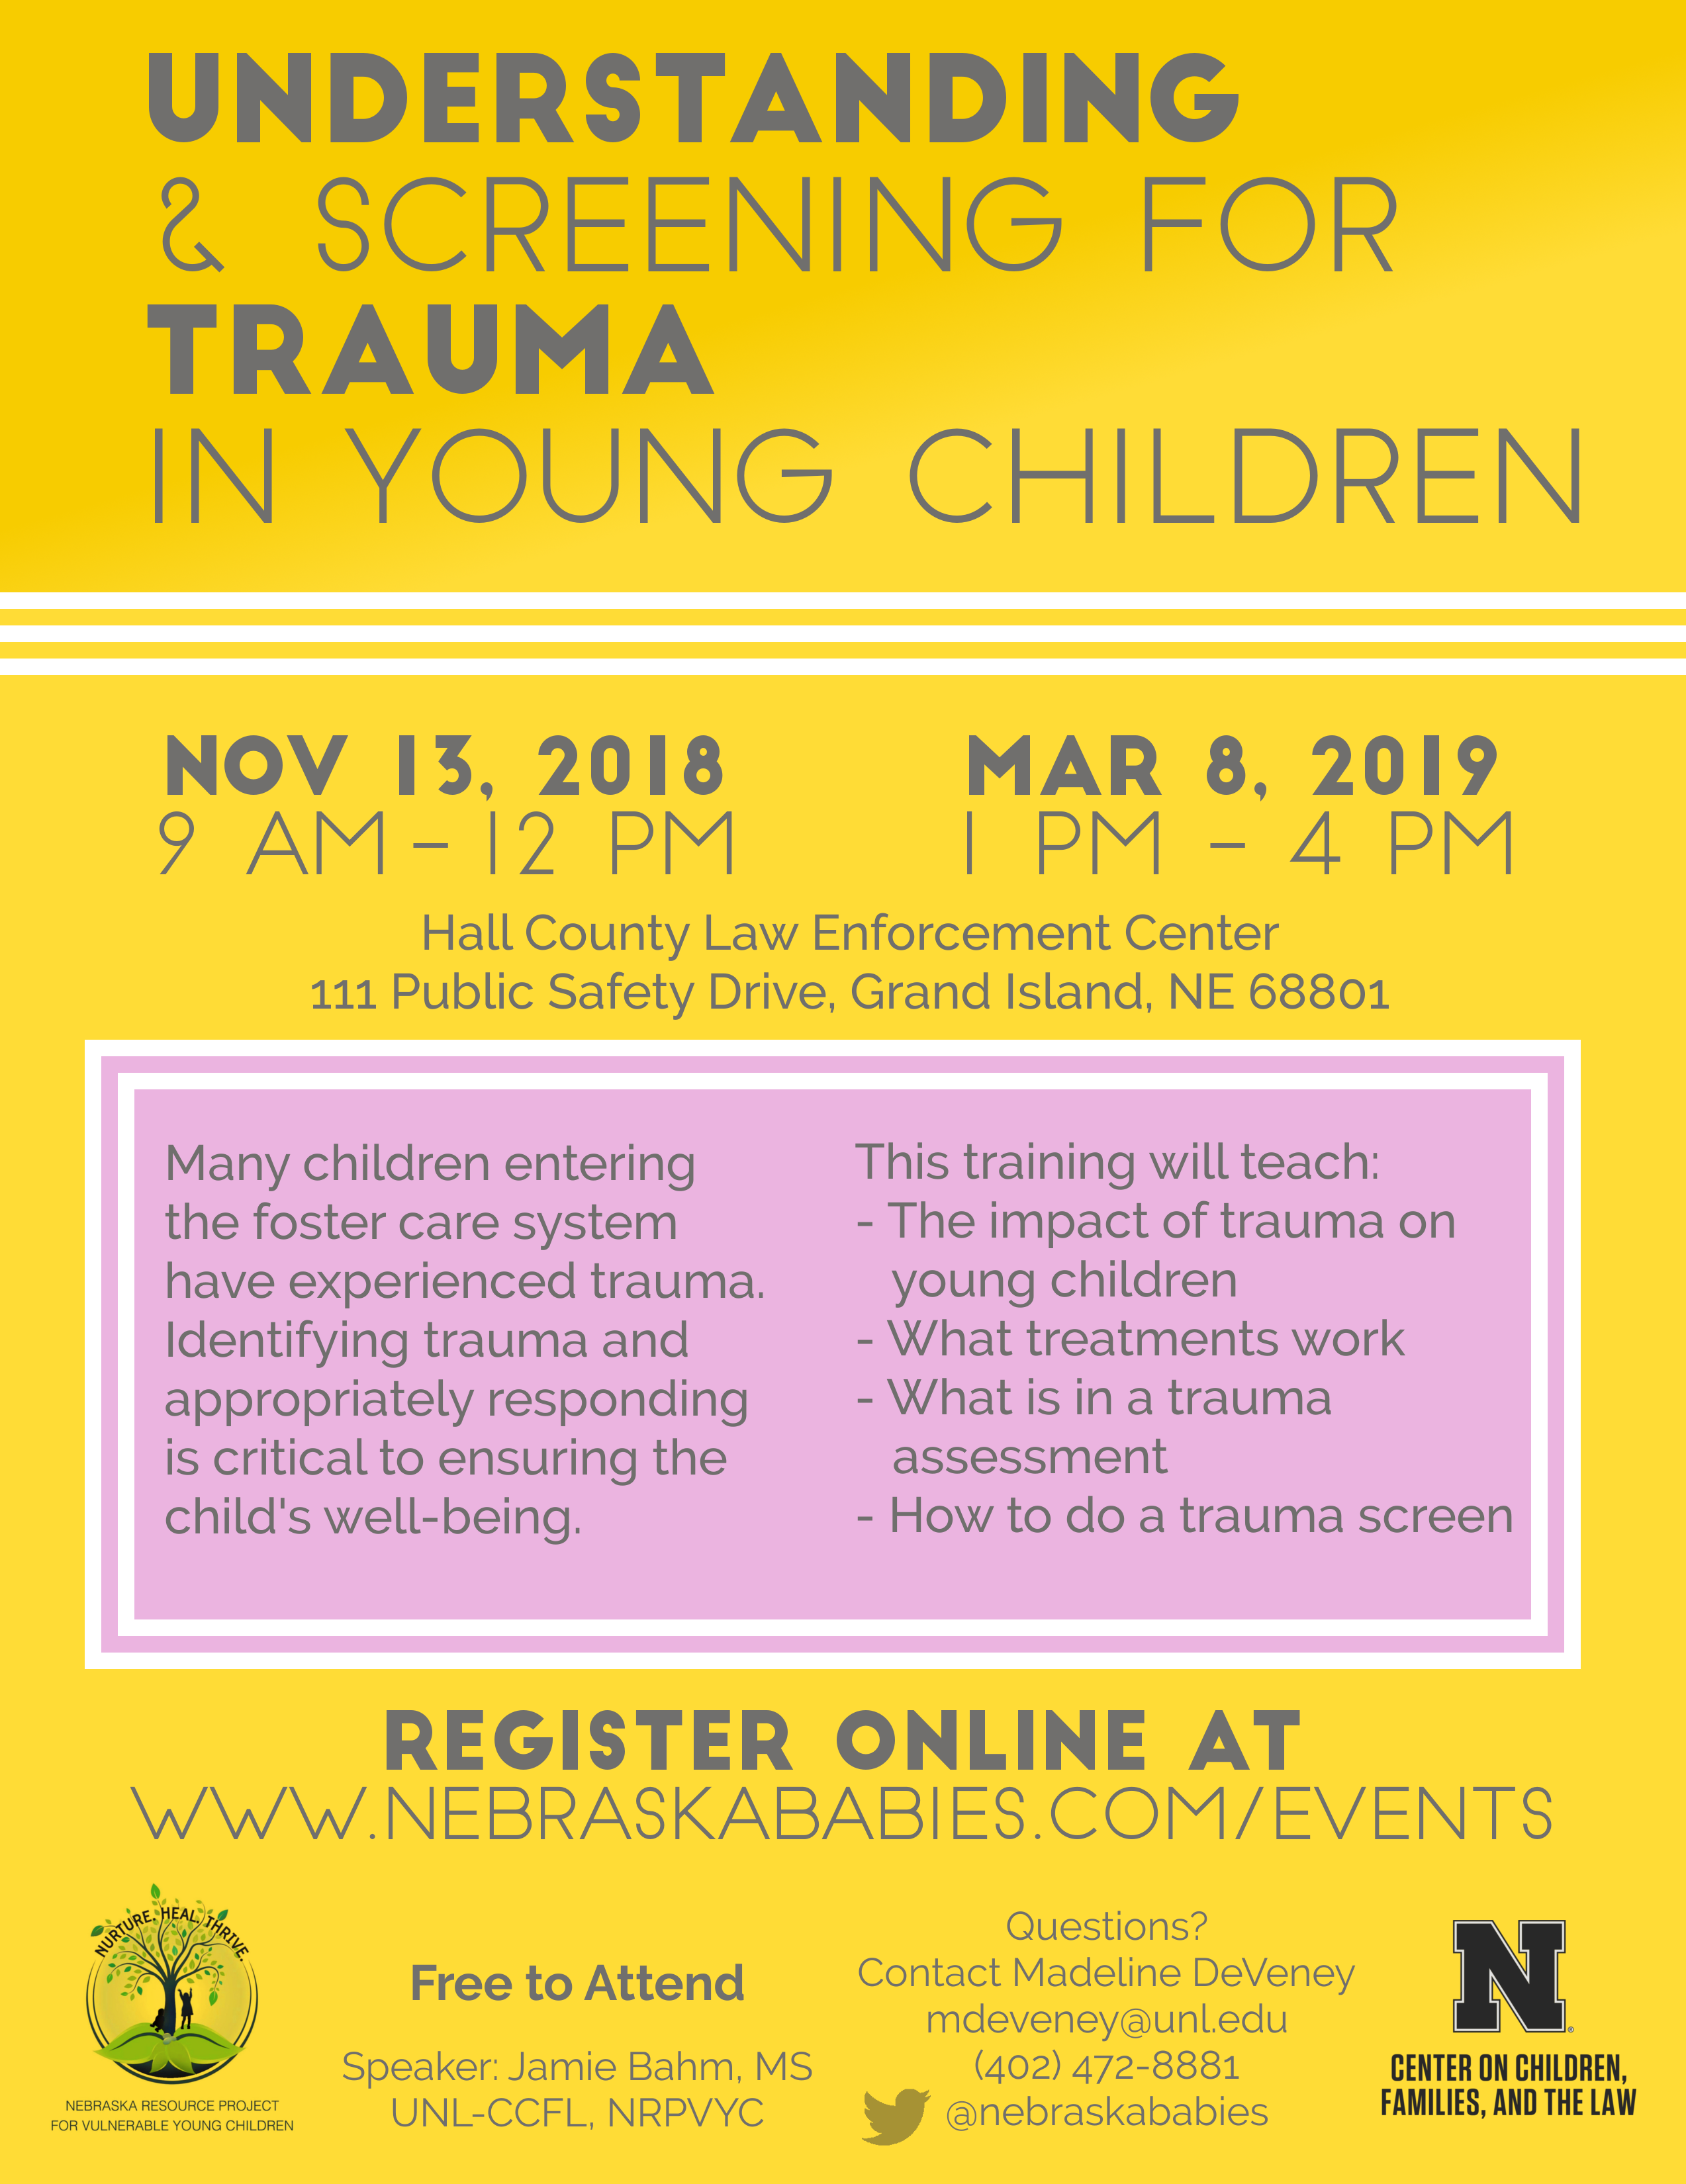 Flyer for two Trauma Trainings in Grand Island, Nebraska